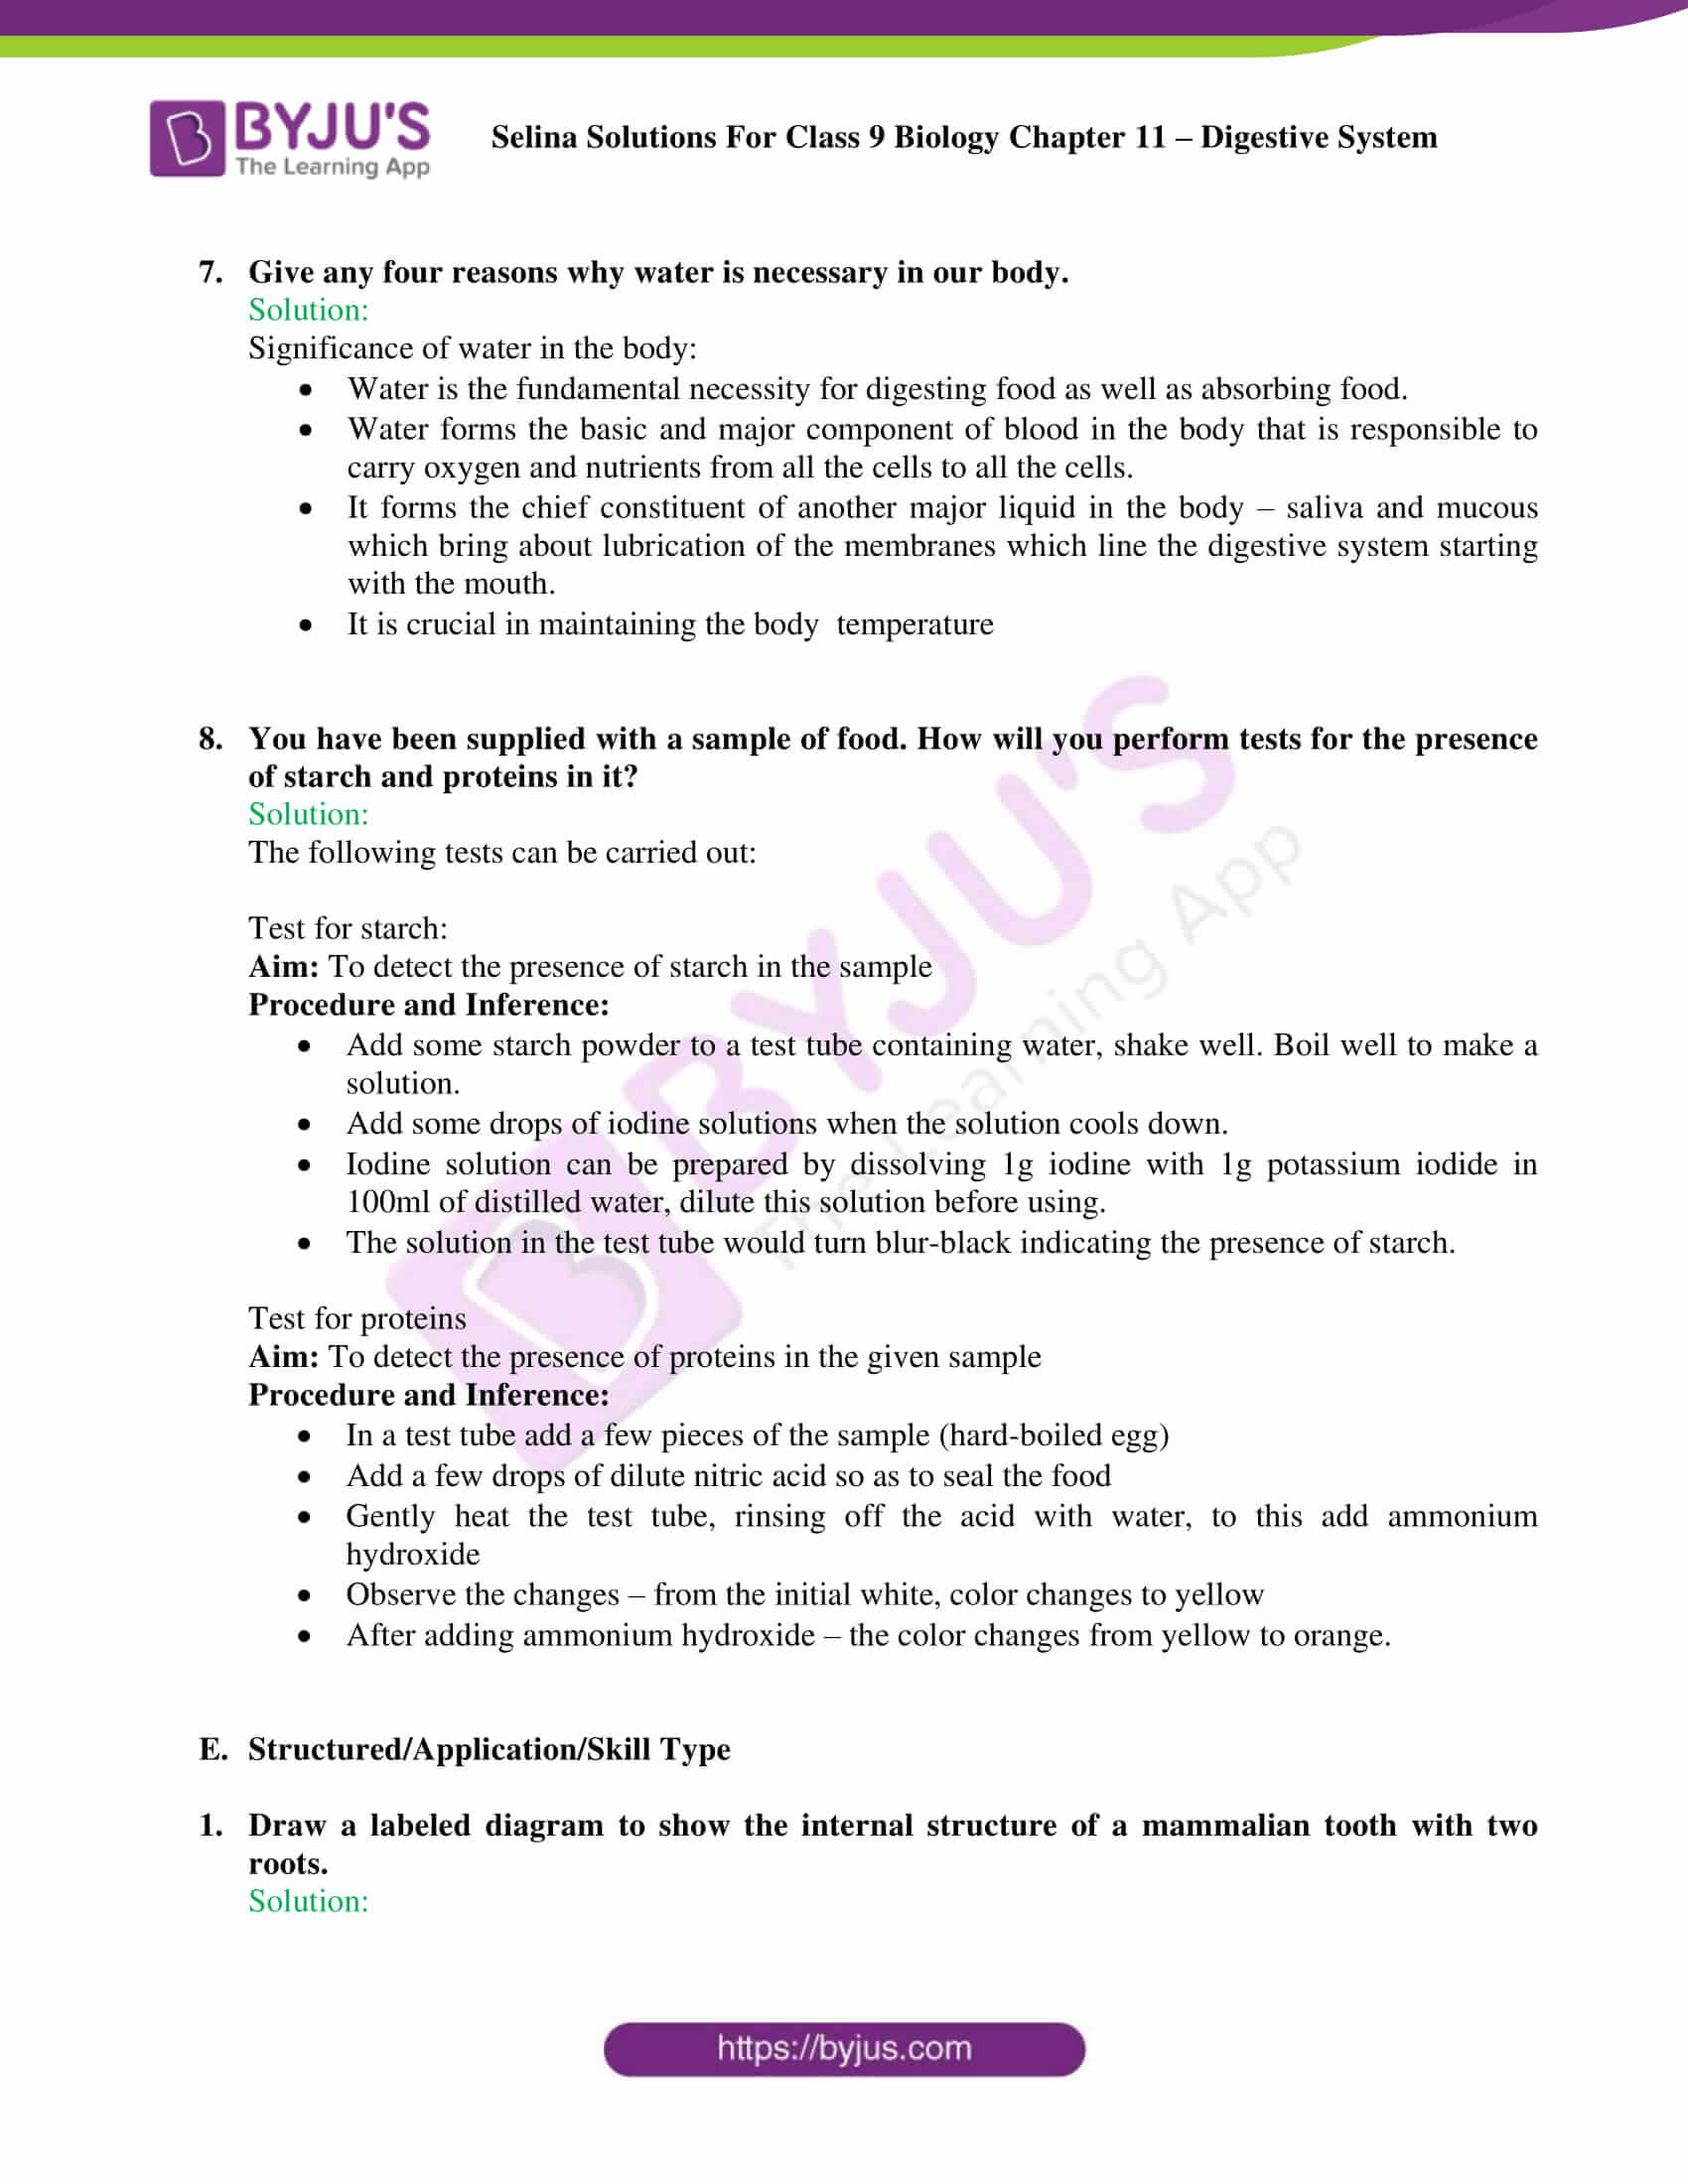 selina Solutions For Class 9 Biology Chapter 11 part 11